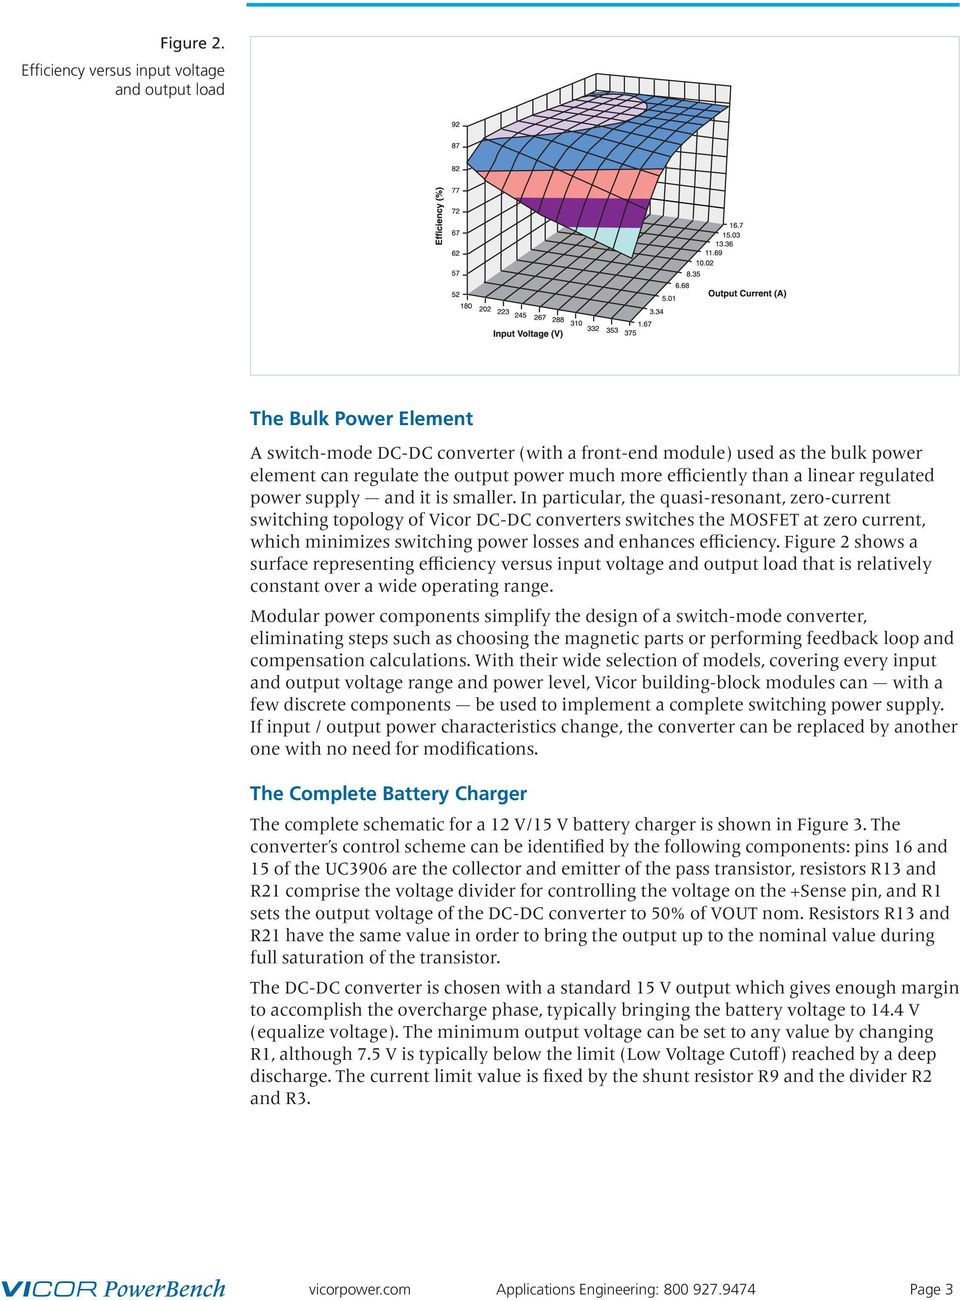 High Efficiency Battery Charger Using Power Components 1 Pdf Simple Pwm Controlled Dc To Cell Phone Circuit Science Efficiently Than A Linear Regulated Supply And It Is Smaller